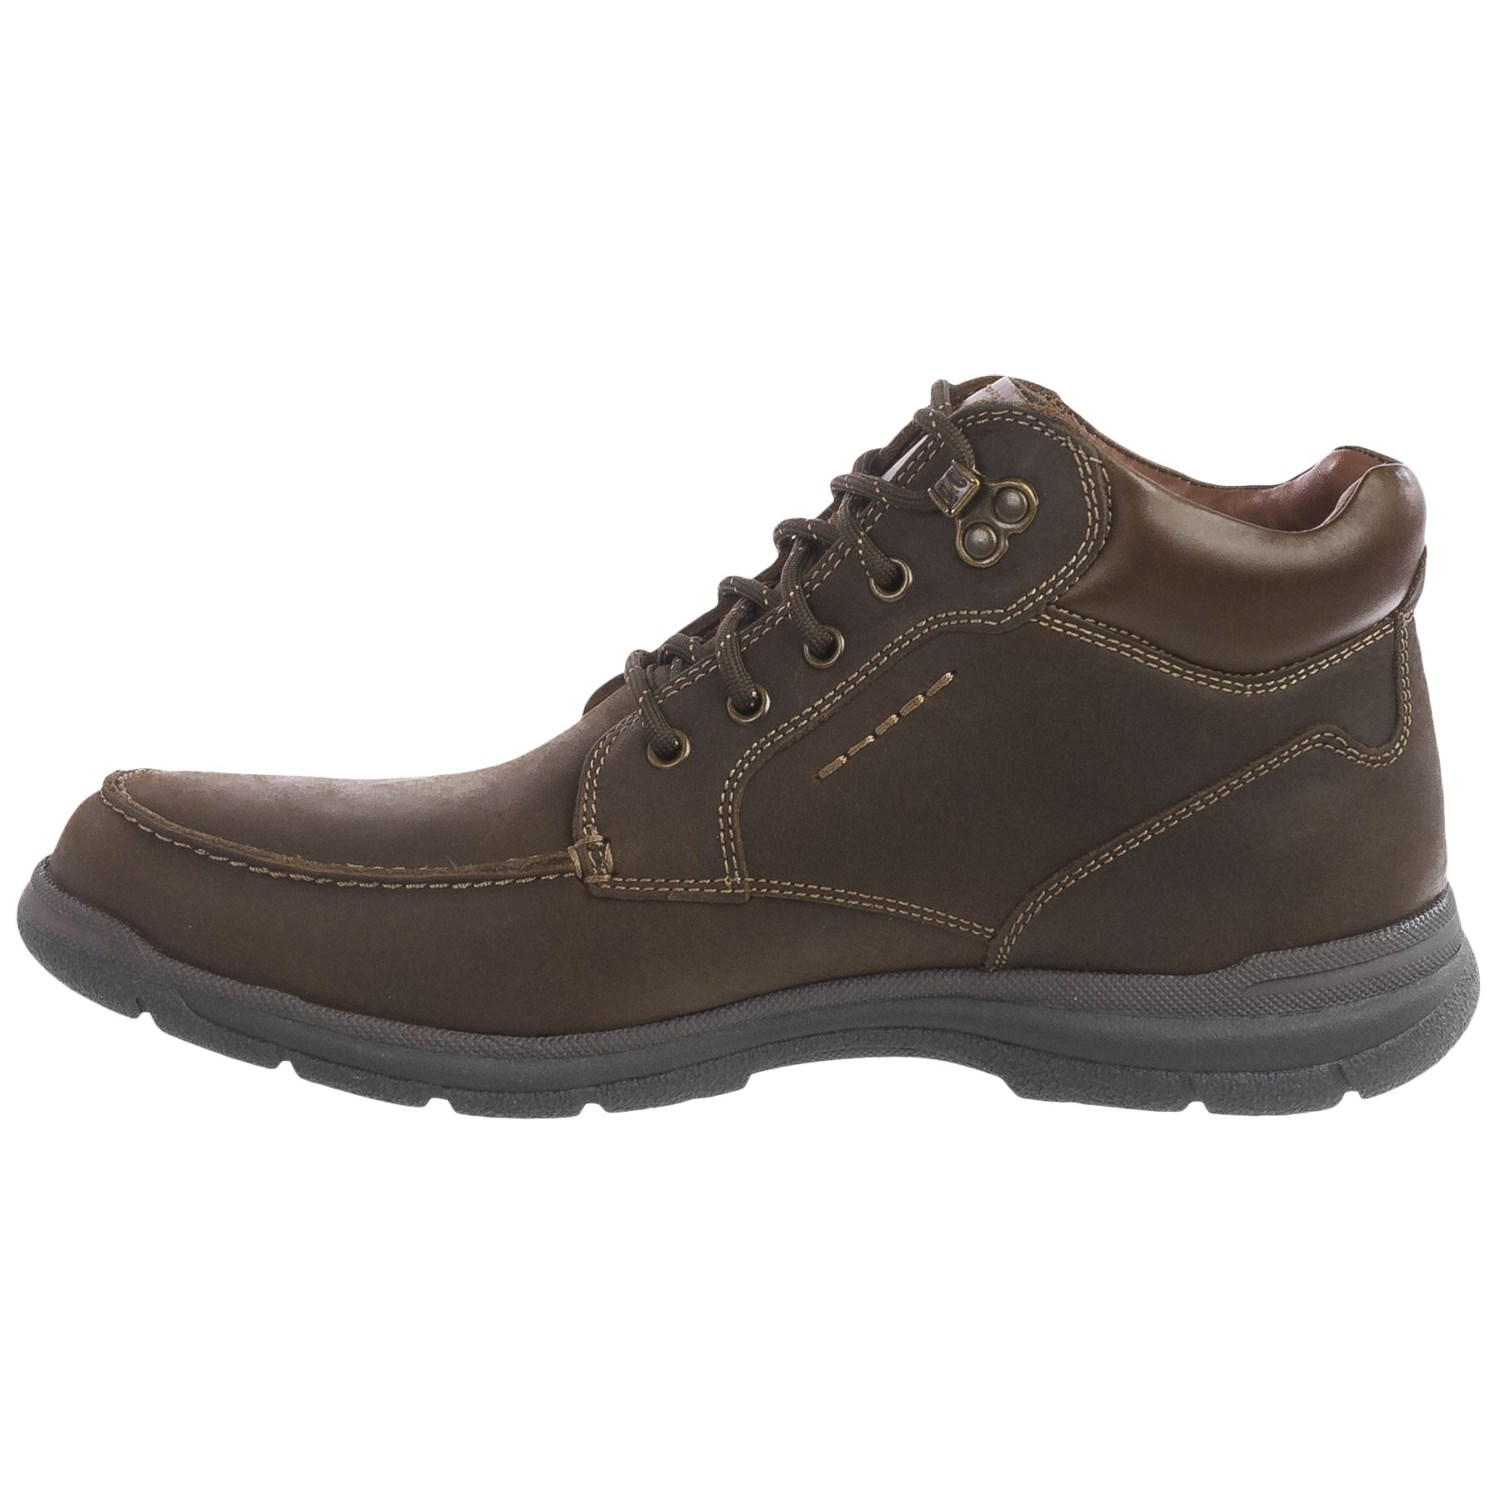 johnston murphy wickman moc toe boots for save 33